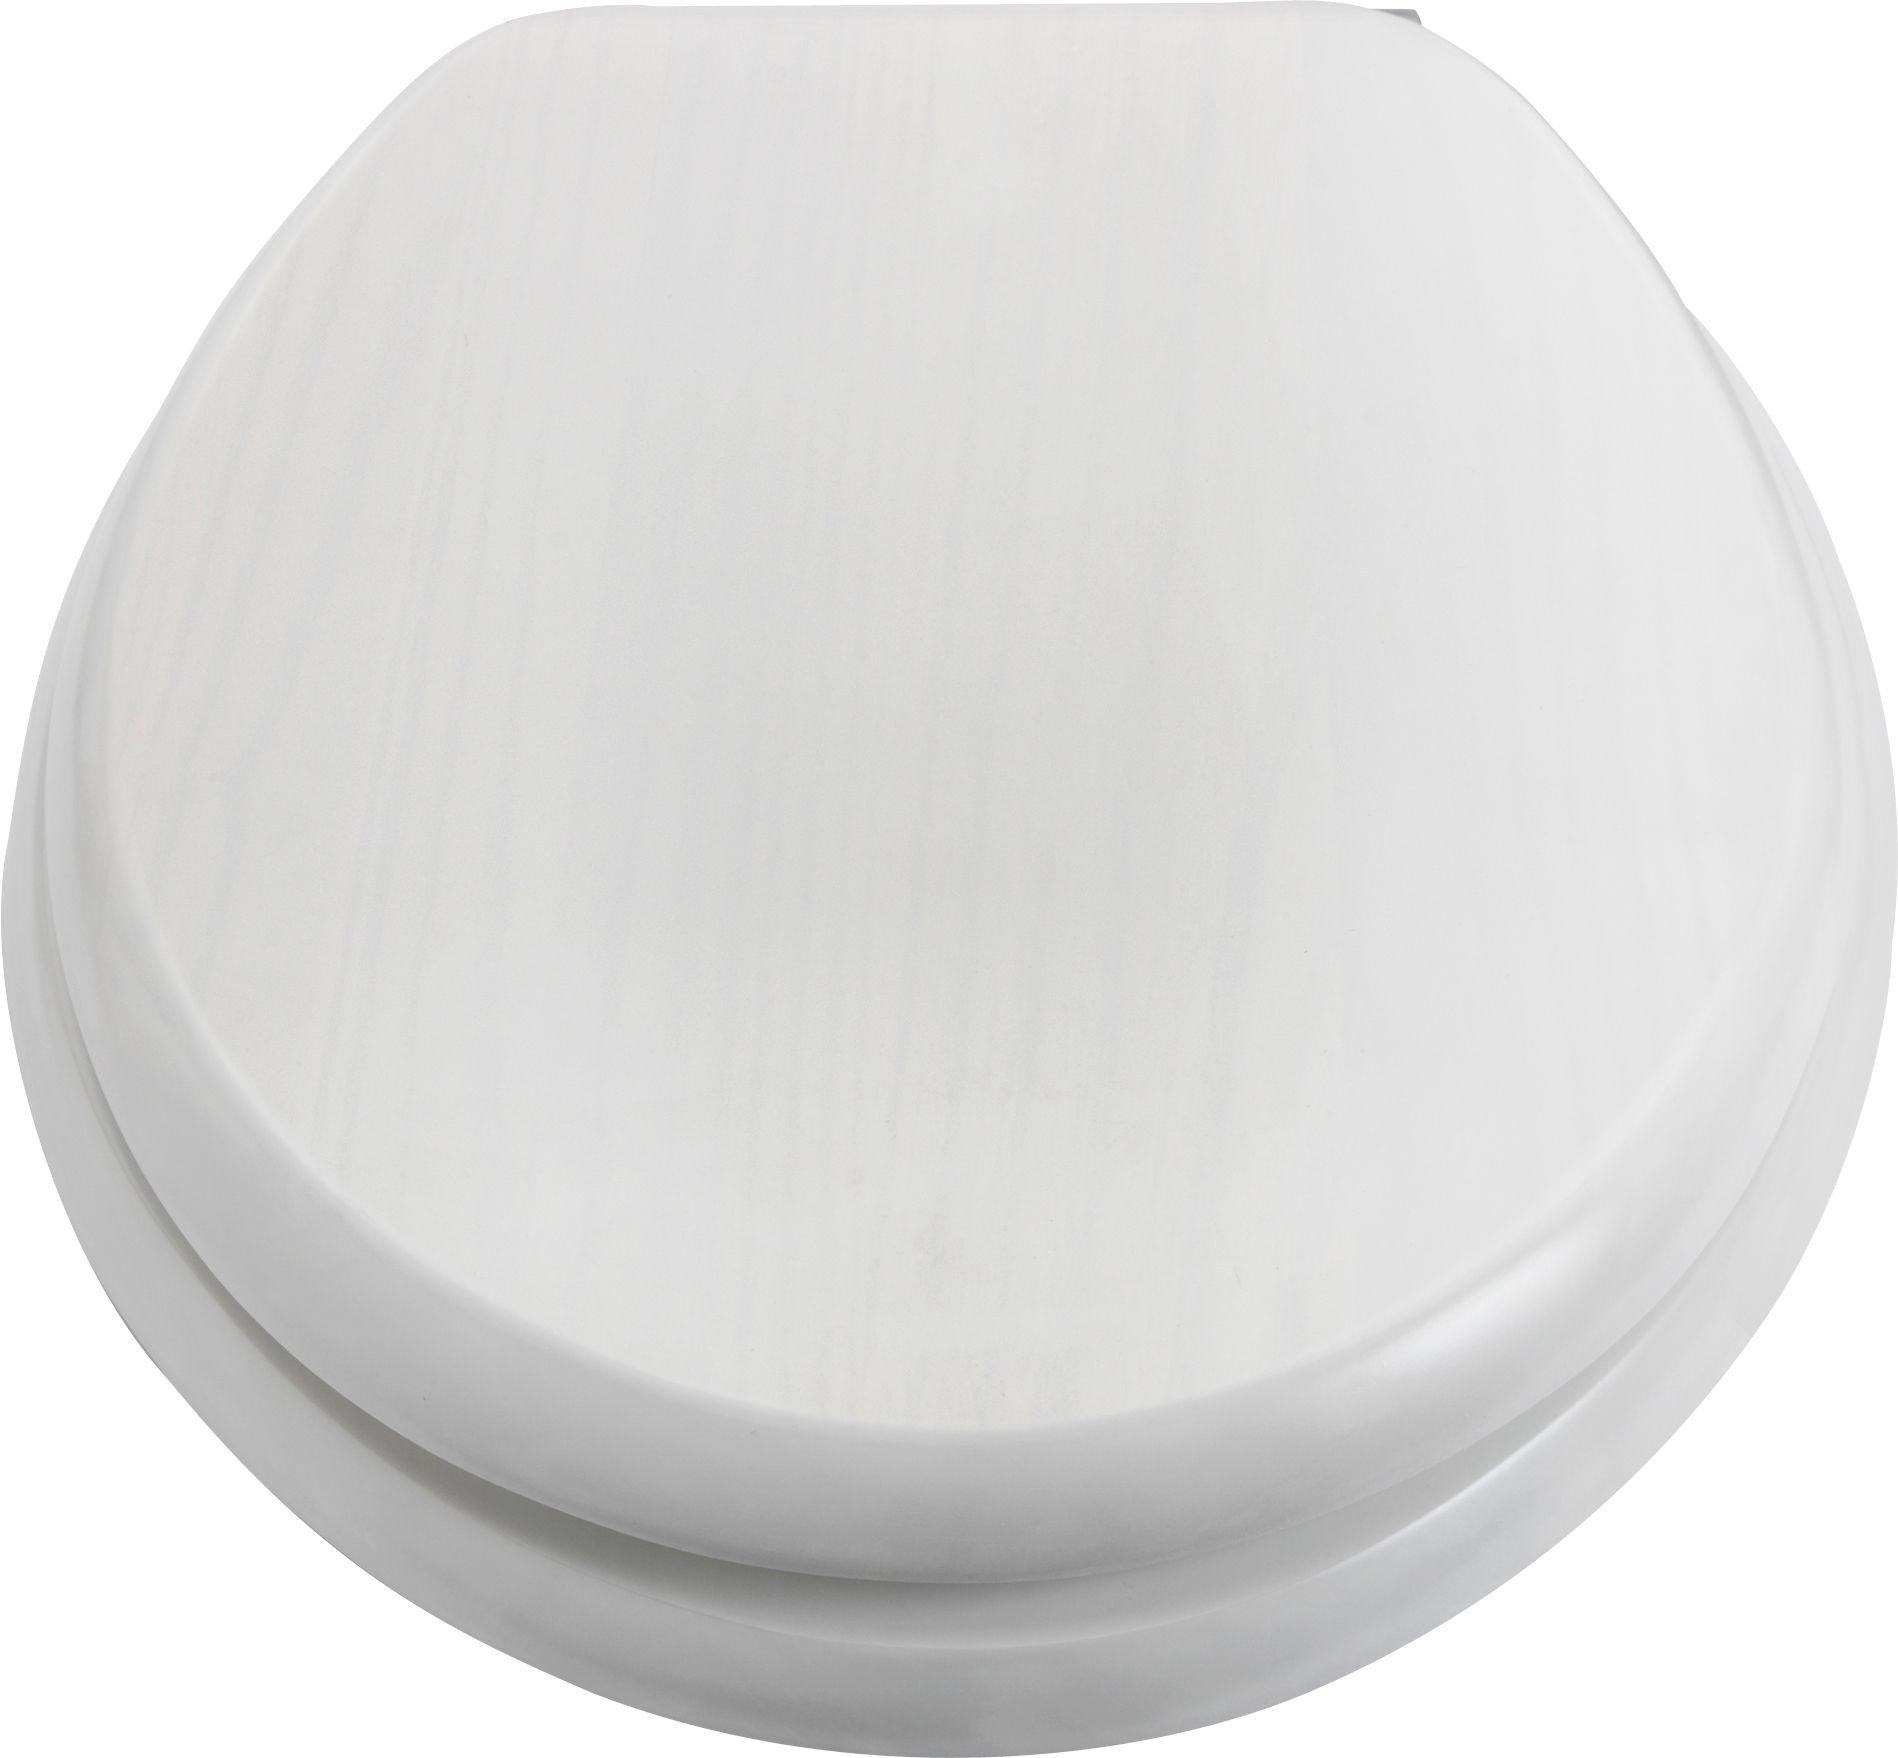 black toilet seat soft close. collection solid wood slow close toilet seat - white washed black soft